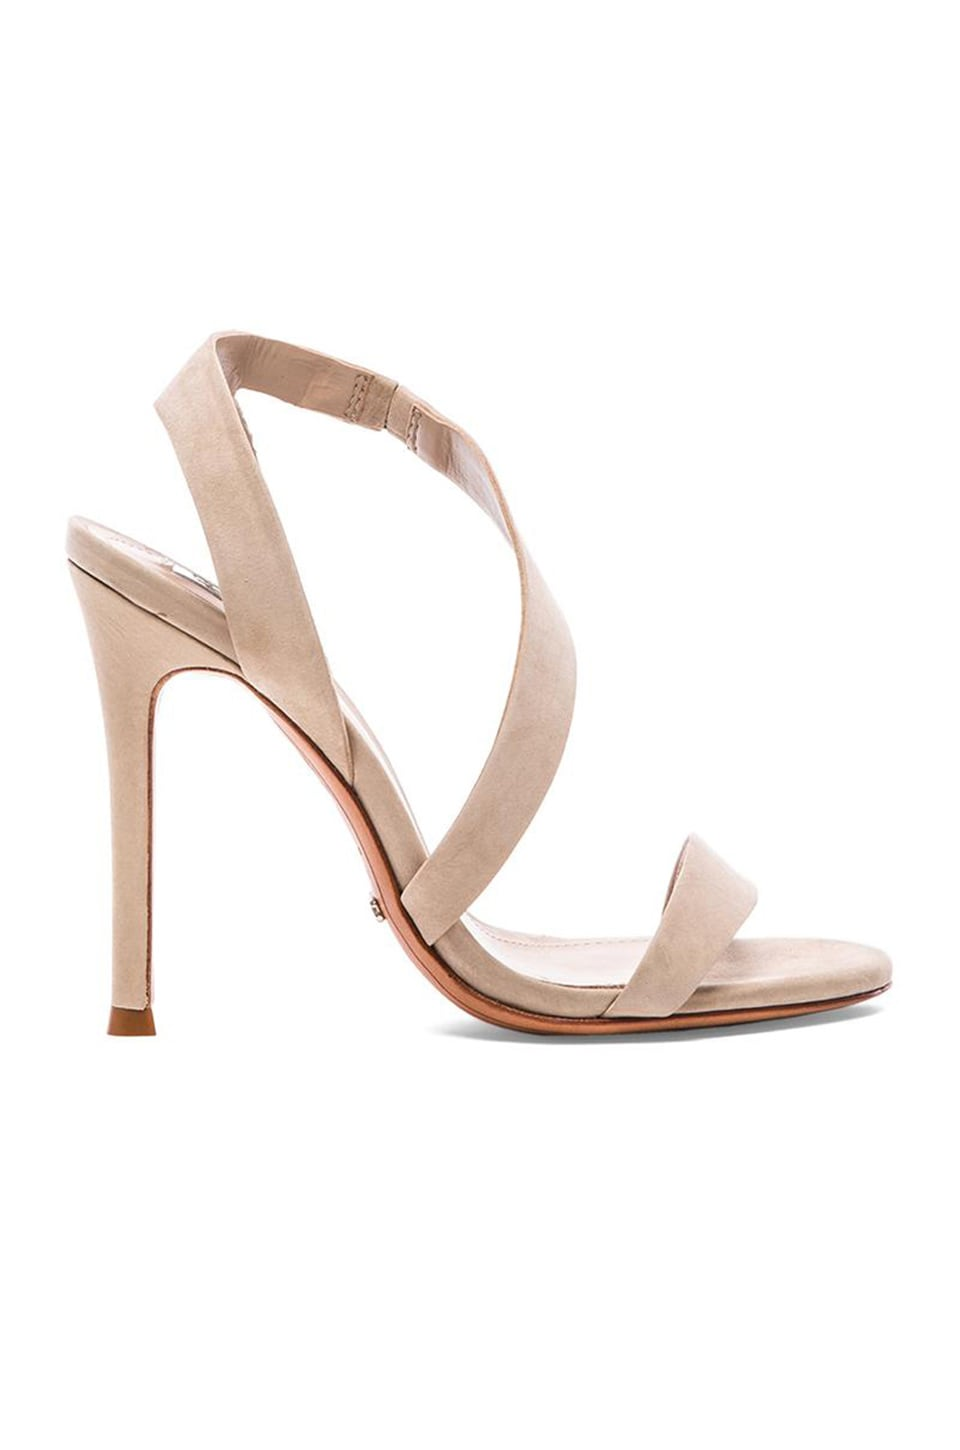 Schutz Tabacema Heel in Oyster